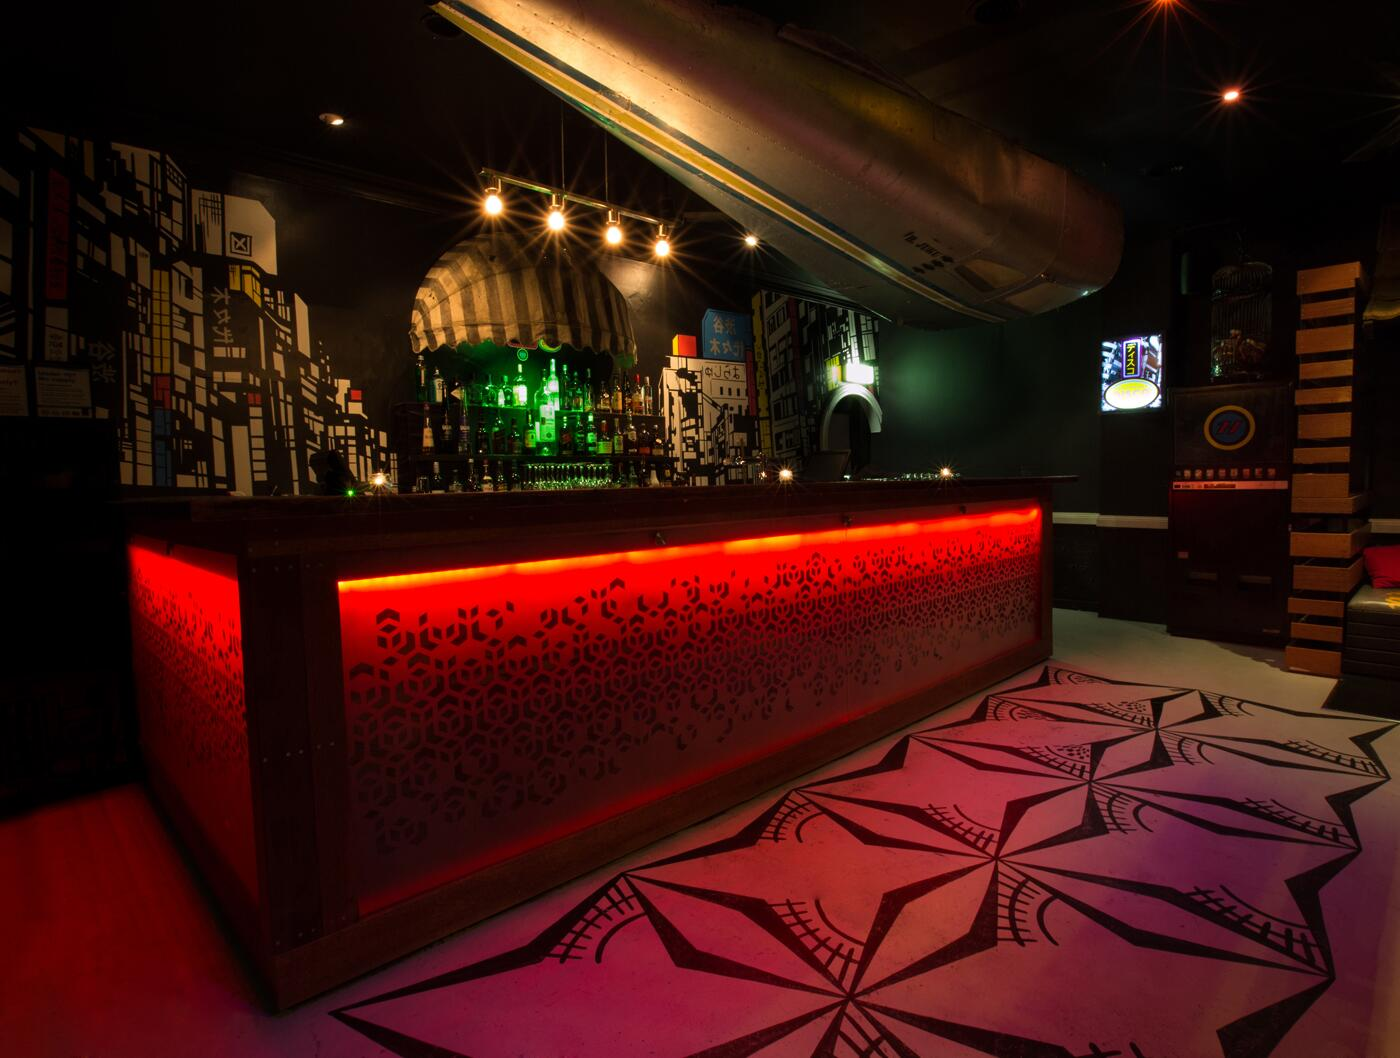 #HarryJukus #bar #lounge #pub #private #cocktail #function #events #party #birthday #swan #richmond #melbourne http://t.co/M1x5BueCeH